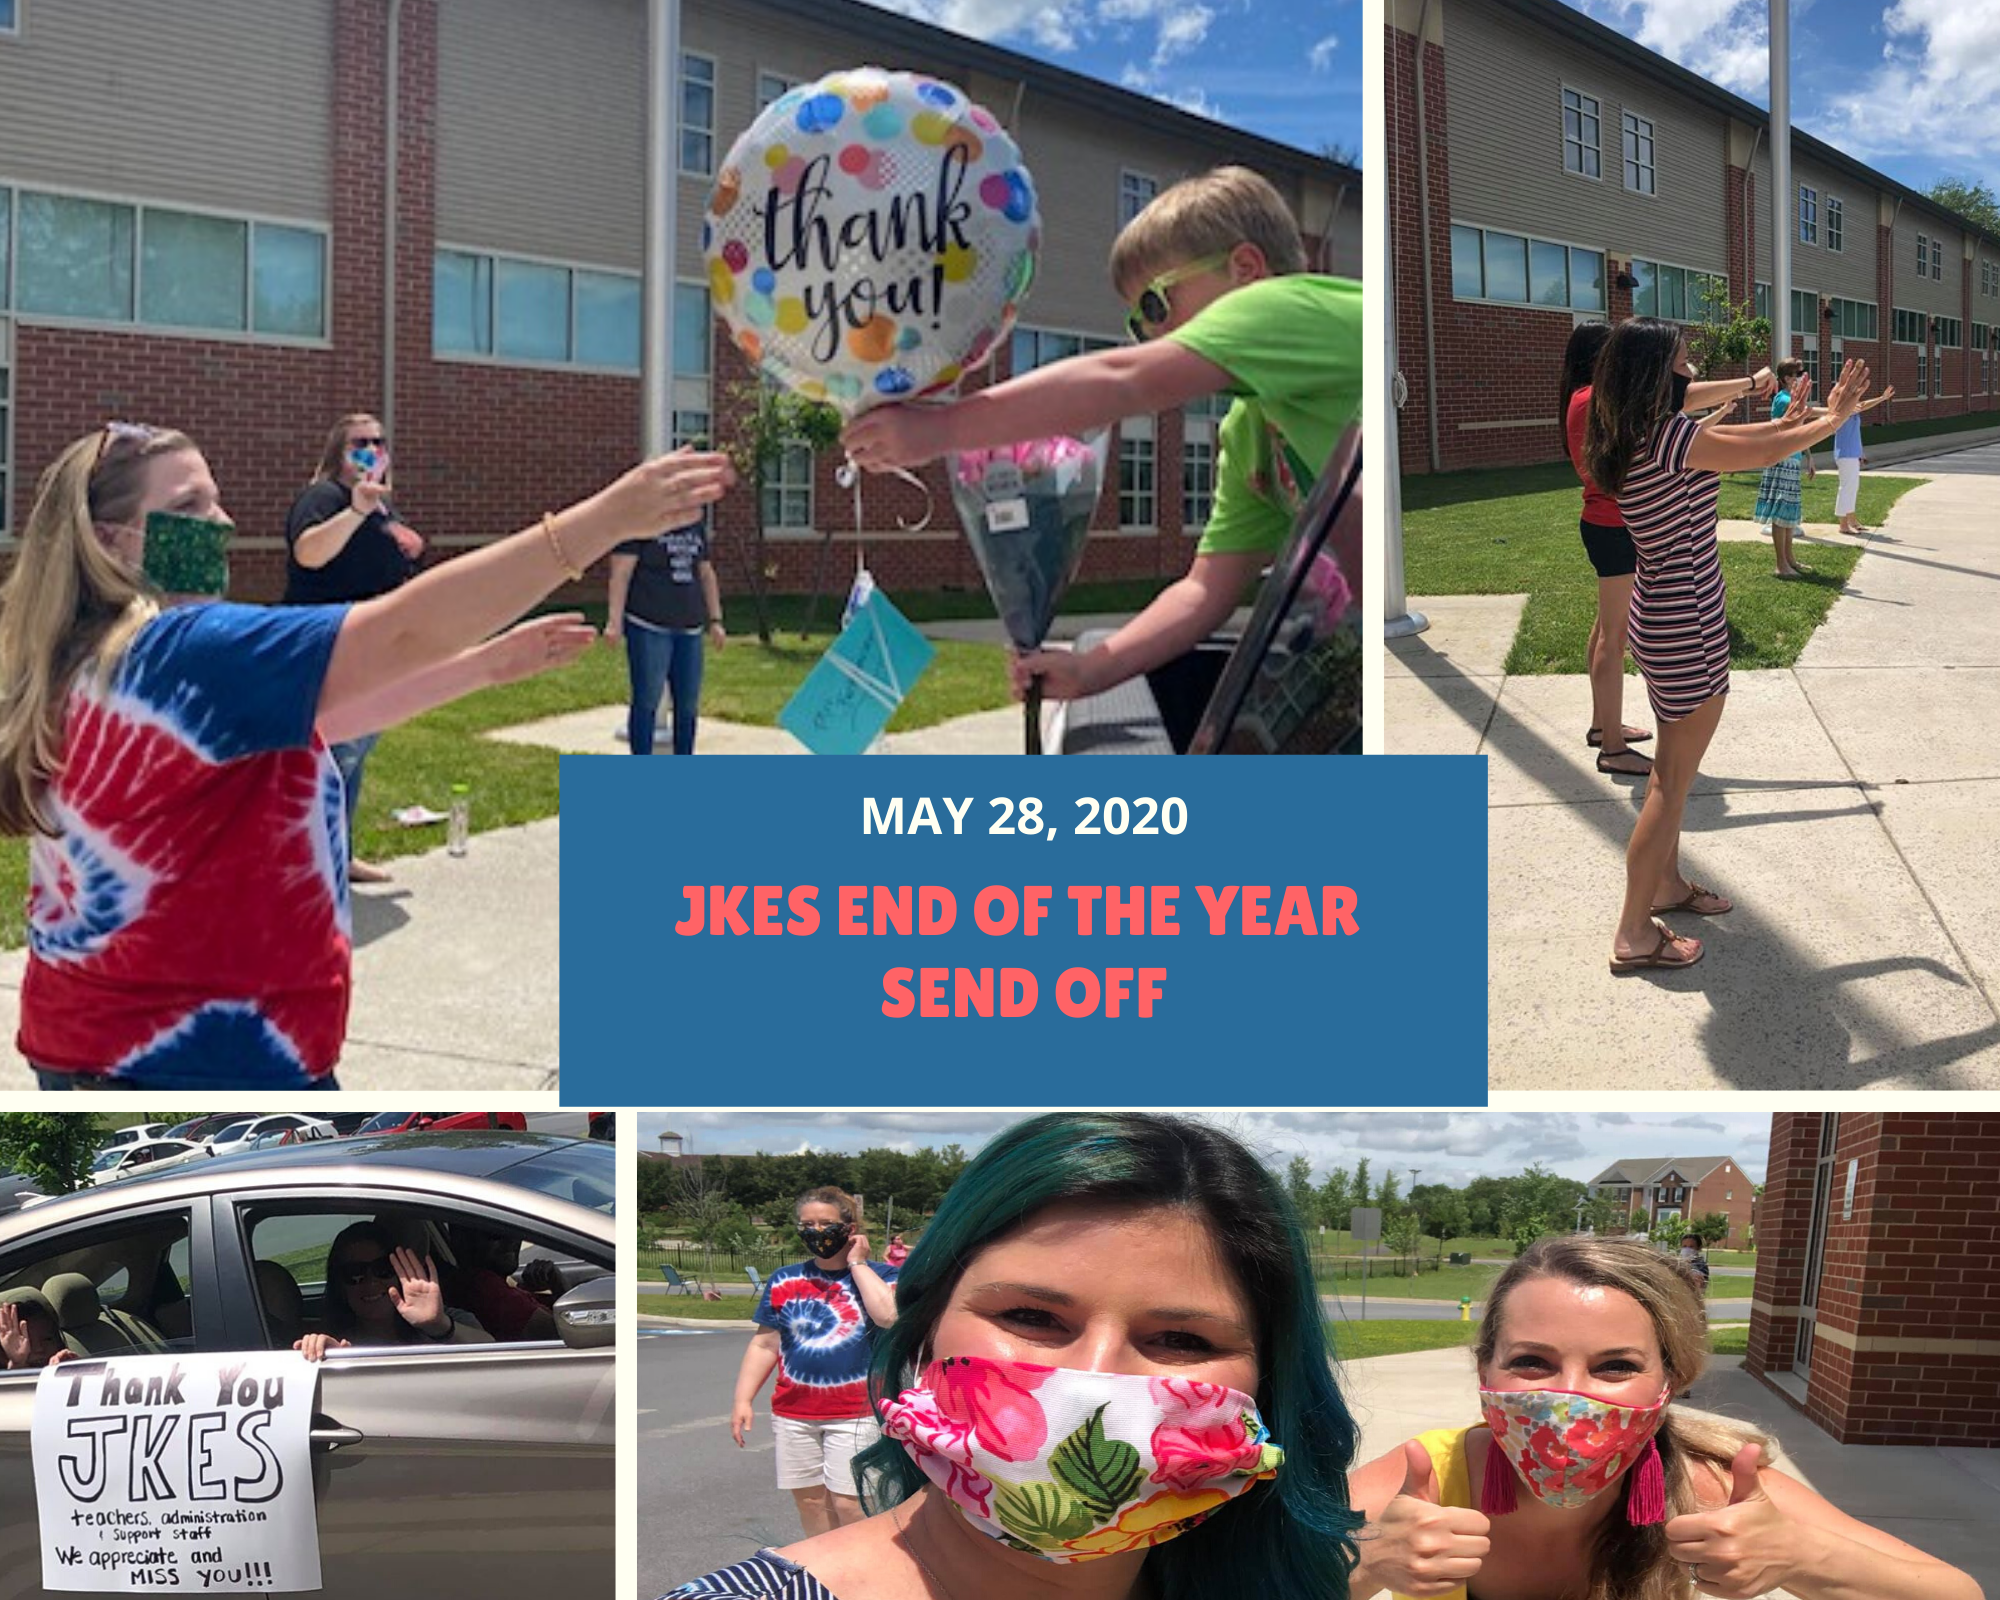 JKES End of the Year Send Off May 28, 2020